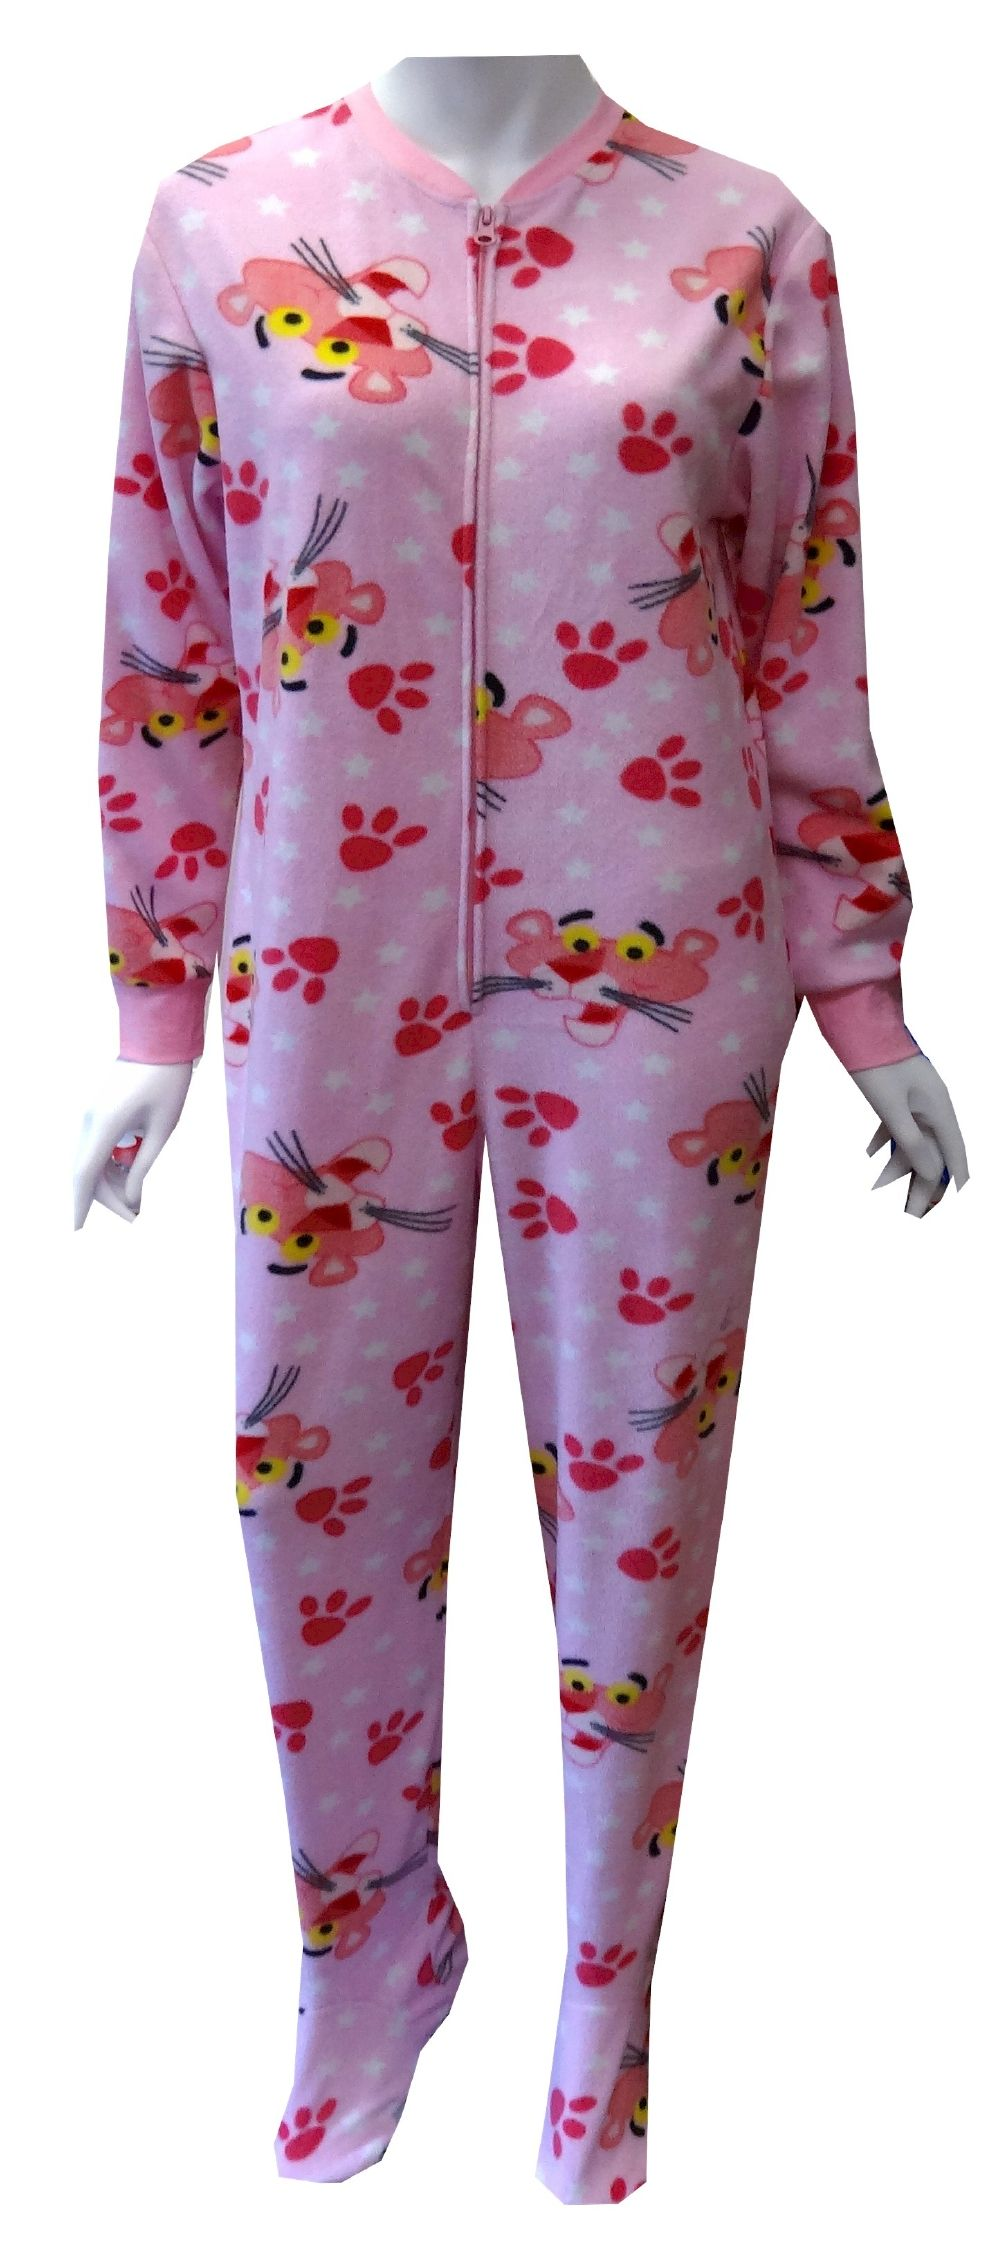 f2a3ae8f5 Pink Panther Star Struck Pink Fleece Footie Onesie Pajama The Pink ...